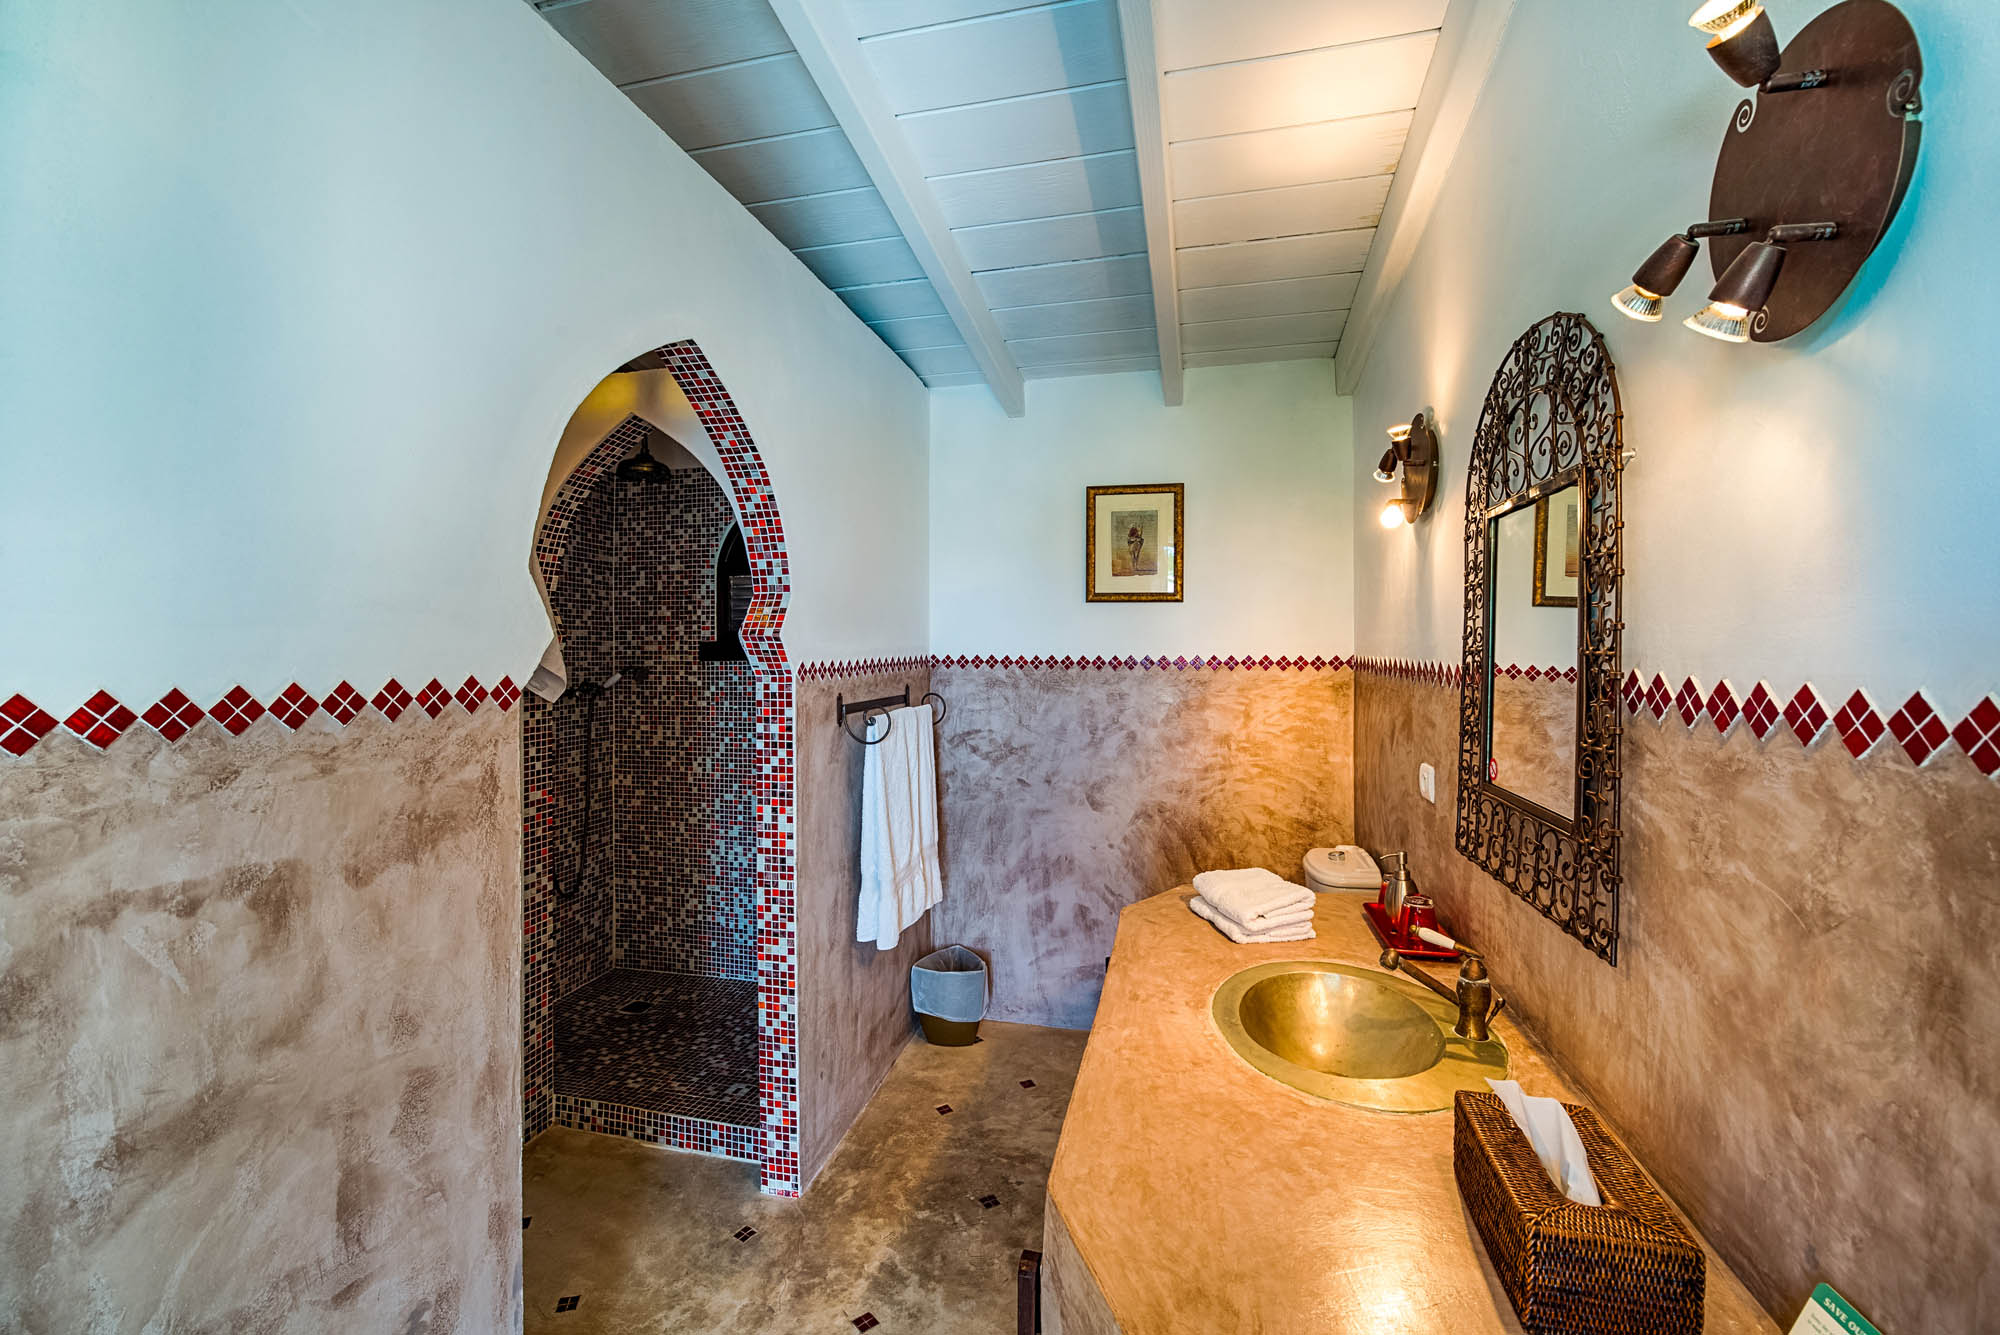 The stylish designed bathroom of the third bedroom at Le Mas des Sables, Baie aux Cayes, Terres-Basses, St. Martin villa rental, French West Indies.